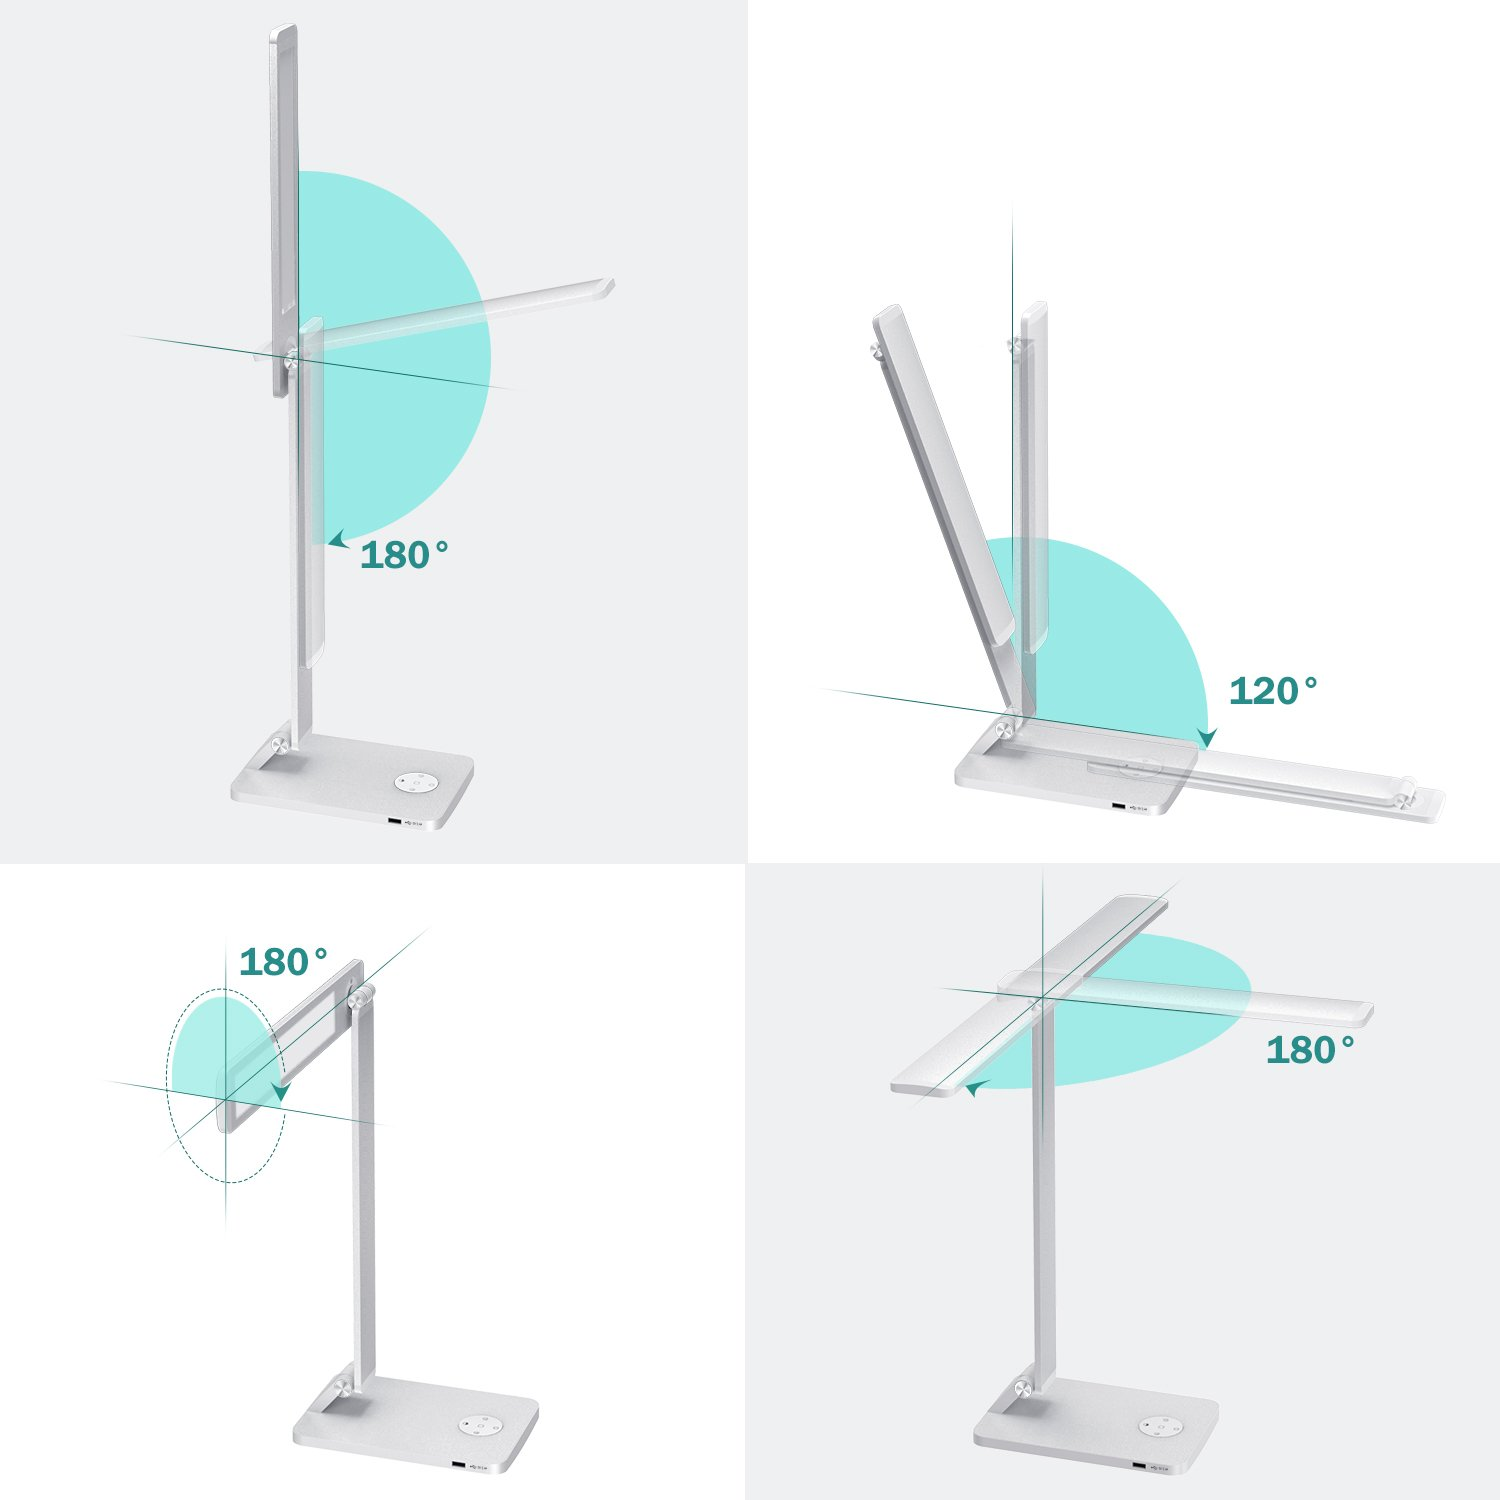 Sleep Mode Moko Smart Touch Stylish Metal Table Lamp Space Gray Rotatable Home Office Lamp With Stepless Brightness Color Temperature 5v 2 4a Usb Charging Port Memory Function Led Desk Lamp Desk Lamps